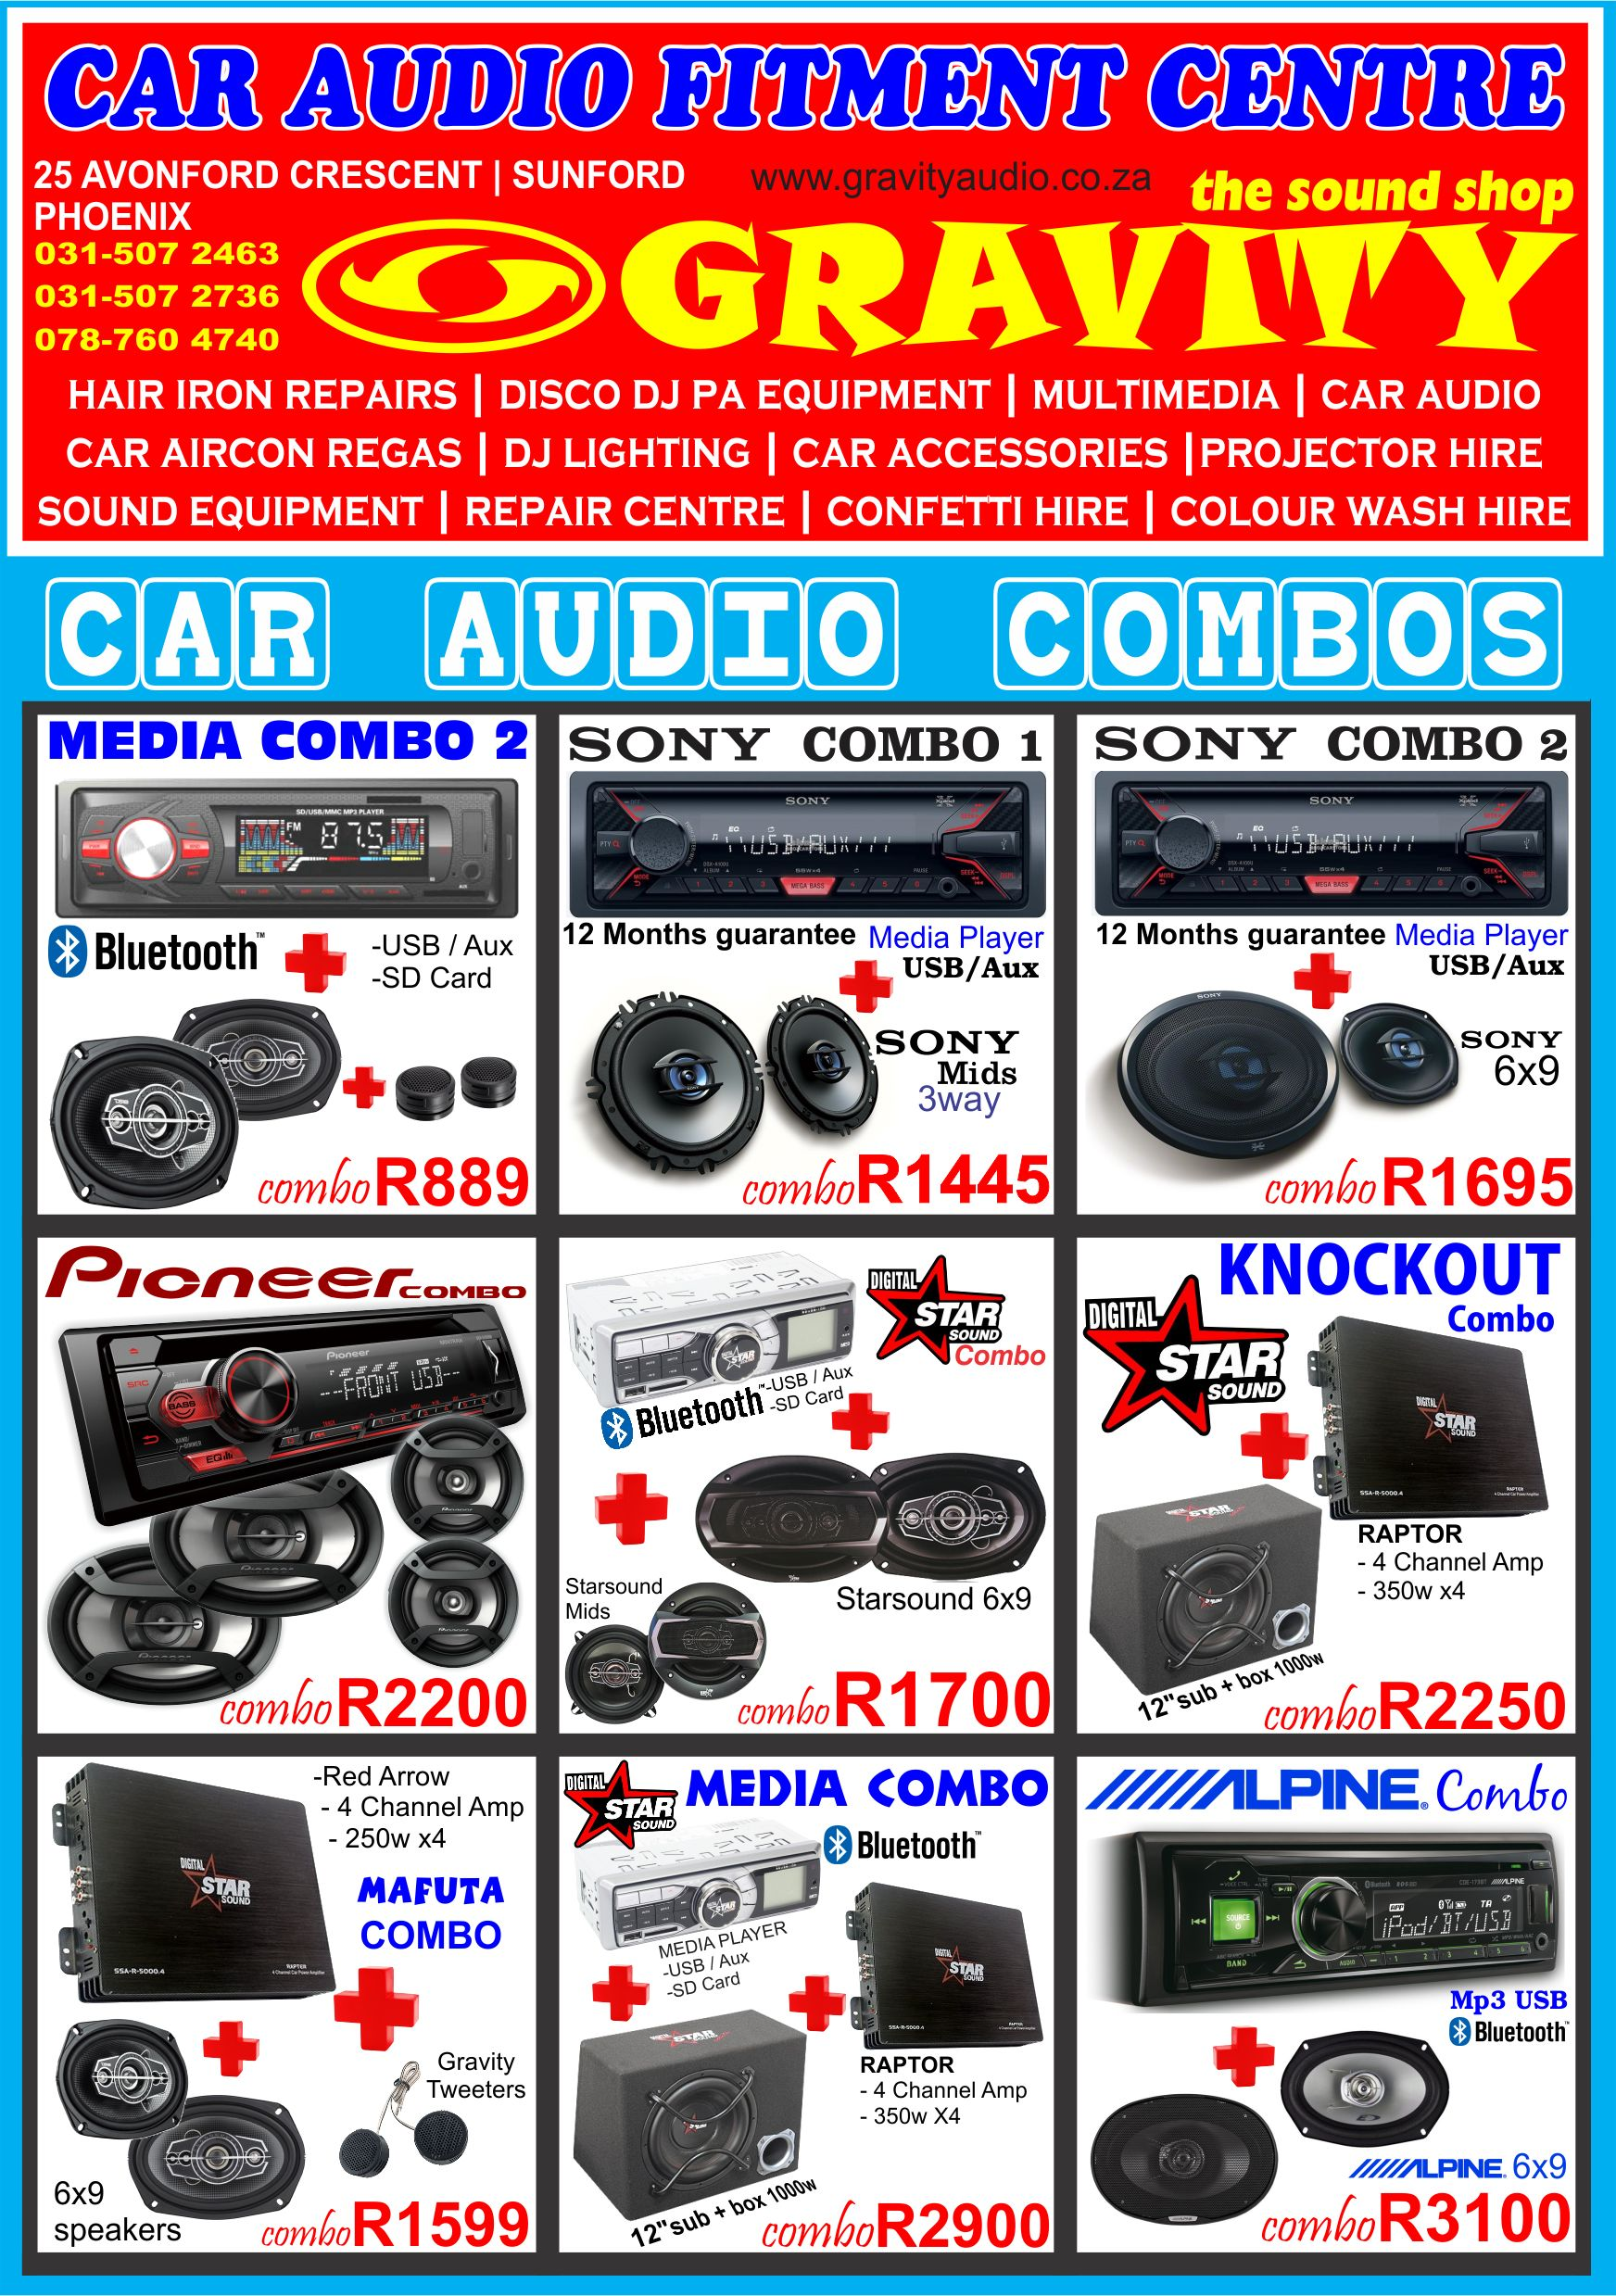 car audio combo , car audio equipment , sony , pioneer ,jvc , kicker , targa , xtc , jbl . starsound  | car audio durban | car audio fitment durban | dj sound durban | disco dj pa equipment durban | disco dj lighting durban | dj mixer durban | dj power amp durban | tv box durban | air mouse durban | behringer durban | gravity sound and lighting warehouse durban | dj smoke achine durban | dj smoke fluid durban | disco dj lighting durban | disco dj led lighting durban | disco dj lazer lighting durban | car amps durban | car decks durban | car bluetooth decks durban | car van double dins durban | car subs durban | starsound grey cones subwoofers durban | Car accessories durban | disco dj party combos durban | J EQUIPMENT | DISCO DJ LIGHTING | DJ/PA COMBO PACKAGES | MULITIMEDIA | MOBILE DISCO-DJ FOR HIRE  SOUND EQUIPMENT HIRE | PROJECTOR AND SCREEN FOR HIRE | ELECTRONIC REPAIR CENTRE  GHD HAIR IRON REPIARS-CLOUD NINE | PUBLIC ADDRESS SYSTEMS | PA DESK MIXERS  SANITIZER FOGGING MACHINES | POWER AMPLIFER | CROSSOVER / EQUALIZER | DISCO / PA SPEAKERS  HOME THEATRE SYSTEMS | SANITIZER SMOKE MACHINE | DJ MIXERS | DJ ACCESSORIES  DJ CD / MP3 PLAYERS / MIDI CONTROLLERS | DISCO BOXES | MICROPHONES | CAR AUDIO | CAR AUDIO FITMENT  SANITIZER THERMAL FOGGER MACHINES | CAR ACCESSORIES | CAR SPEAKERS | CAR AMPLIFIERS | CAR SOUND FITMENT  MARINE AUDIO |DISCO LIGHTING FOR HIRE ,SOUND EQUIPMENT FOR HIRE ,PROJECTOR / SCREEN / STAGE FOR HIRE ,COLOUR WASH HIRE,MOOD LIGHTING HIRE ,INTELLIGENT LIGHTING HIRE , OUTDOOR LANTERN HIRE , DJ SOUND FOR HIRE , CONFETTI HIRE , ROSE PETAL HIRE , SMOKE MACHINE HIRE , UV LIGHITNG HIRE DURBAN , SOUND AND LIGHTING HIRE DURBAN